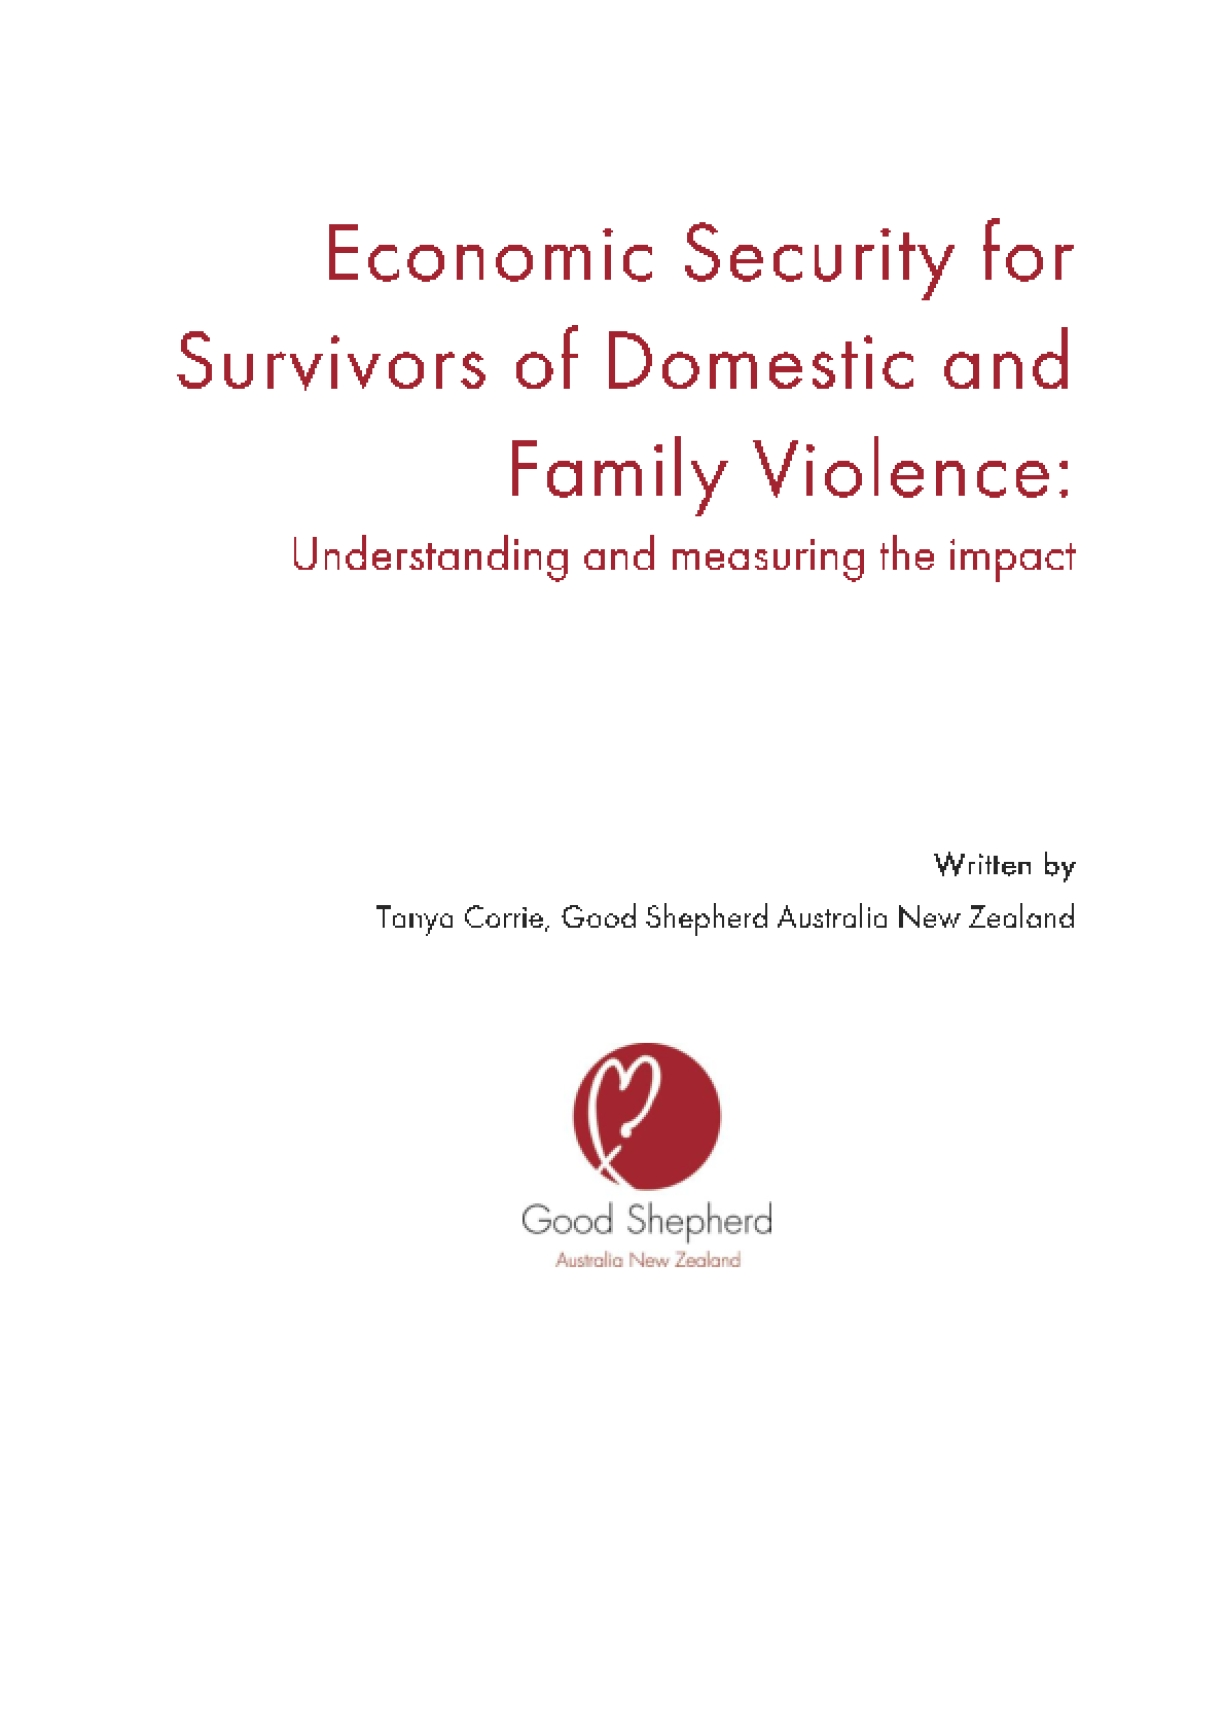 Economic Security for Survivors of Domestic and Family Violence: Understanding and Measuring the Impact